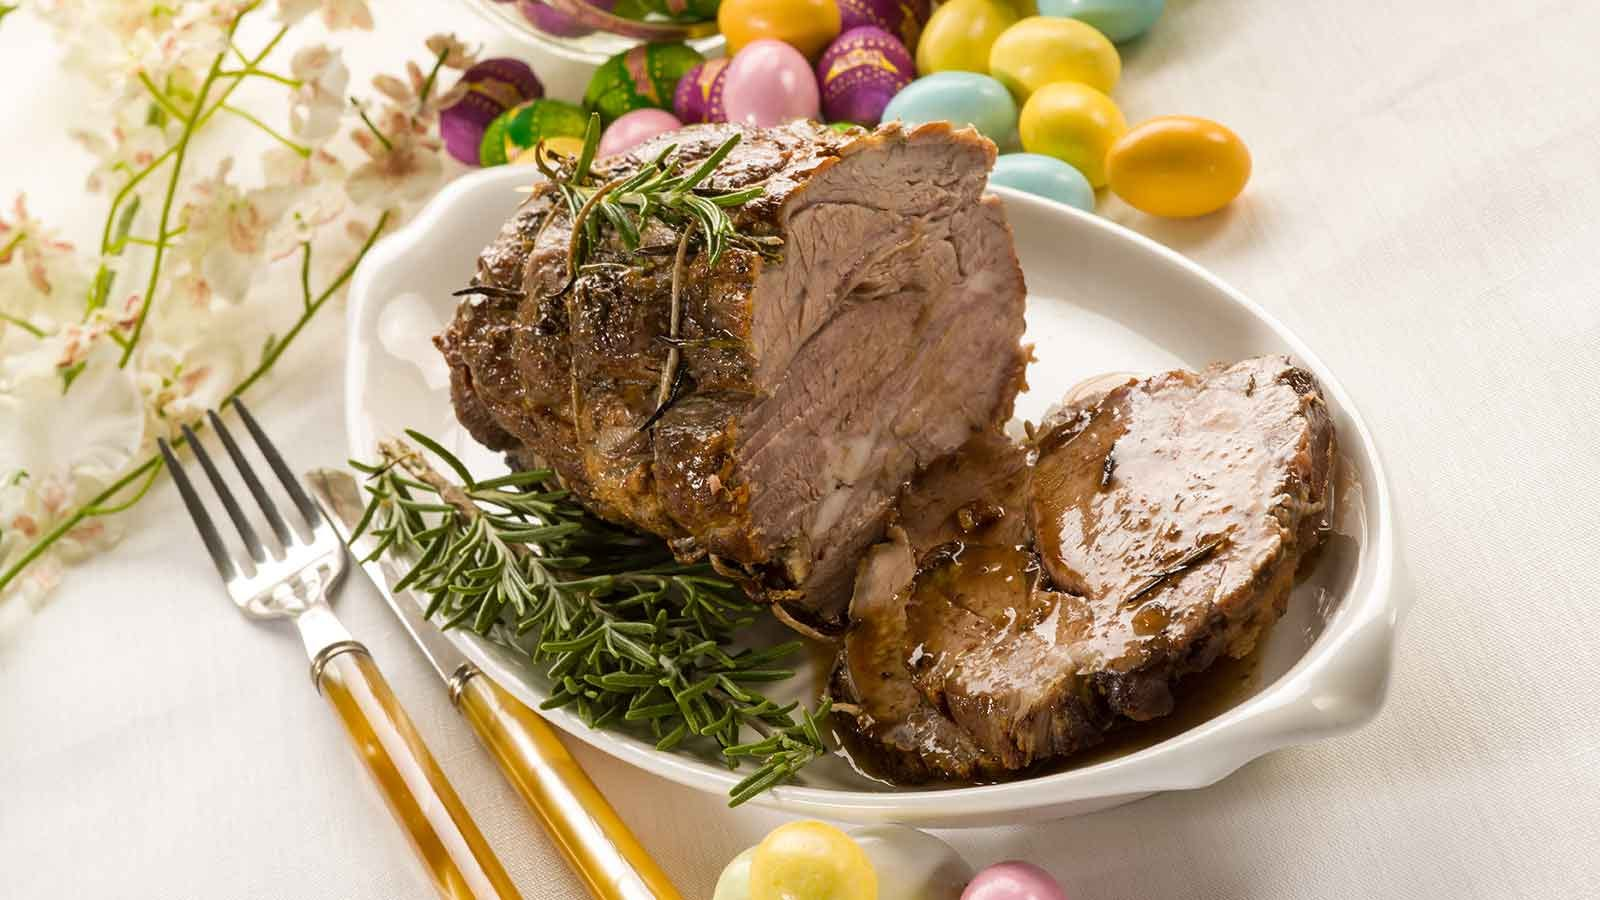 Sliced roasted lamb on a plate next to some colorful eggs.